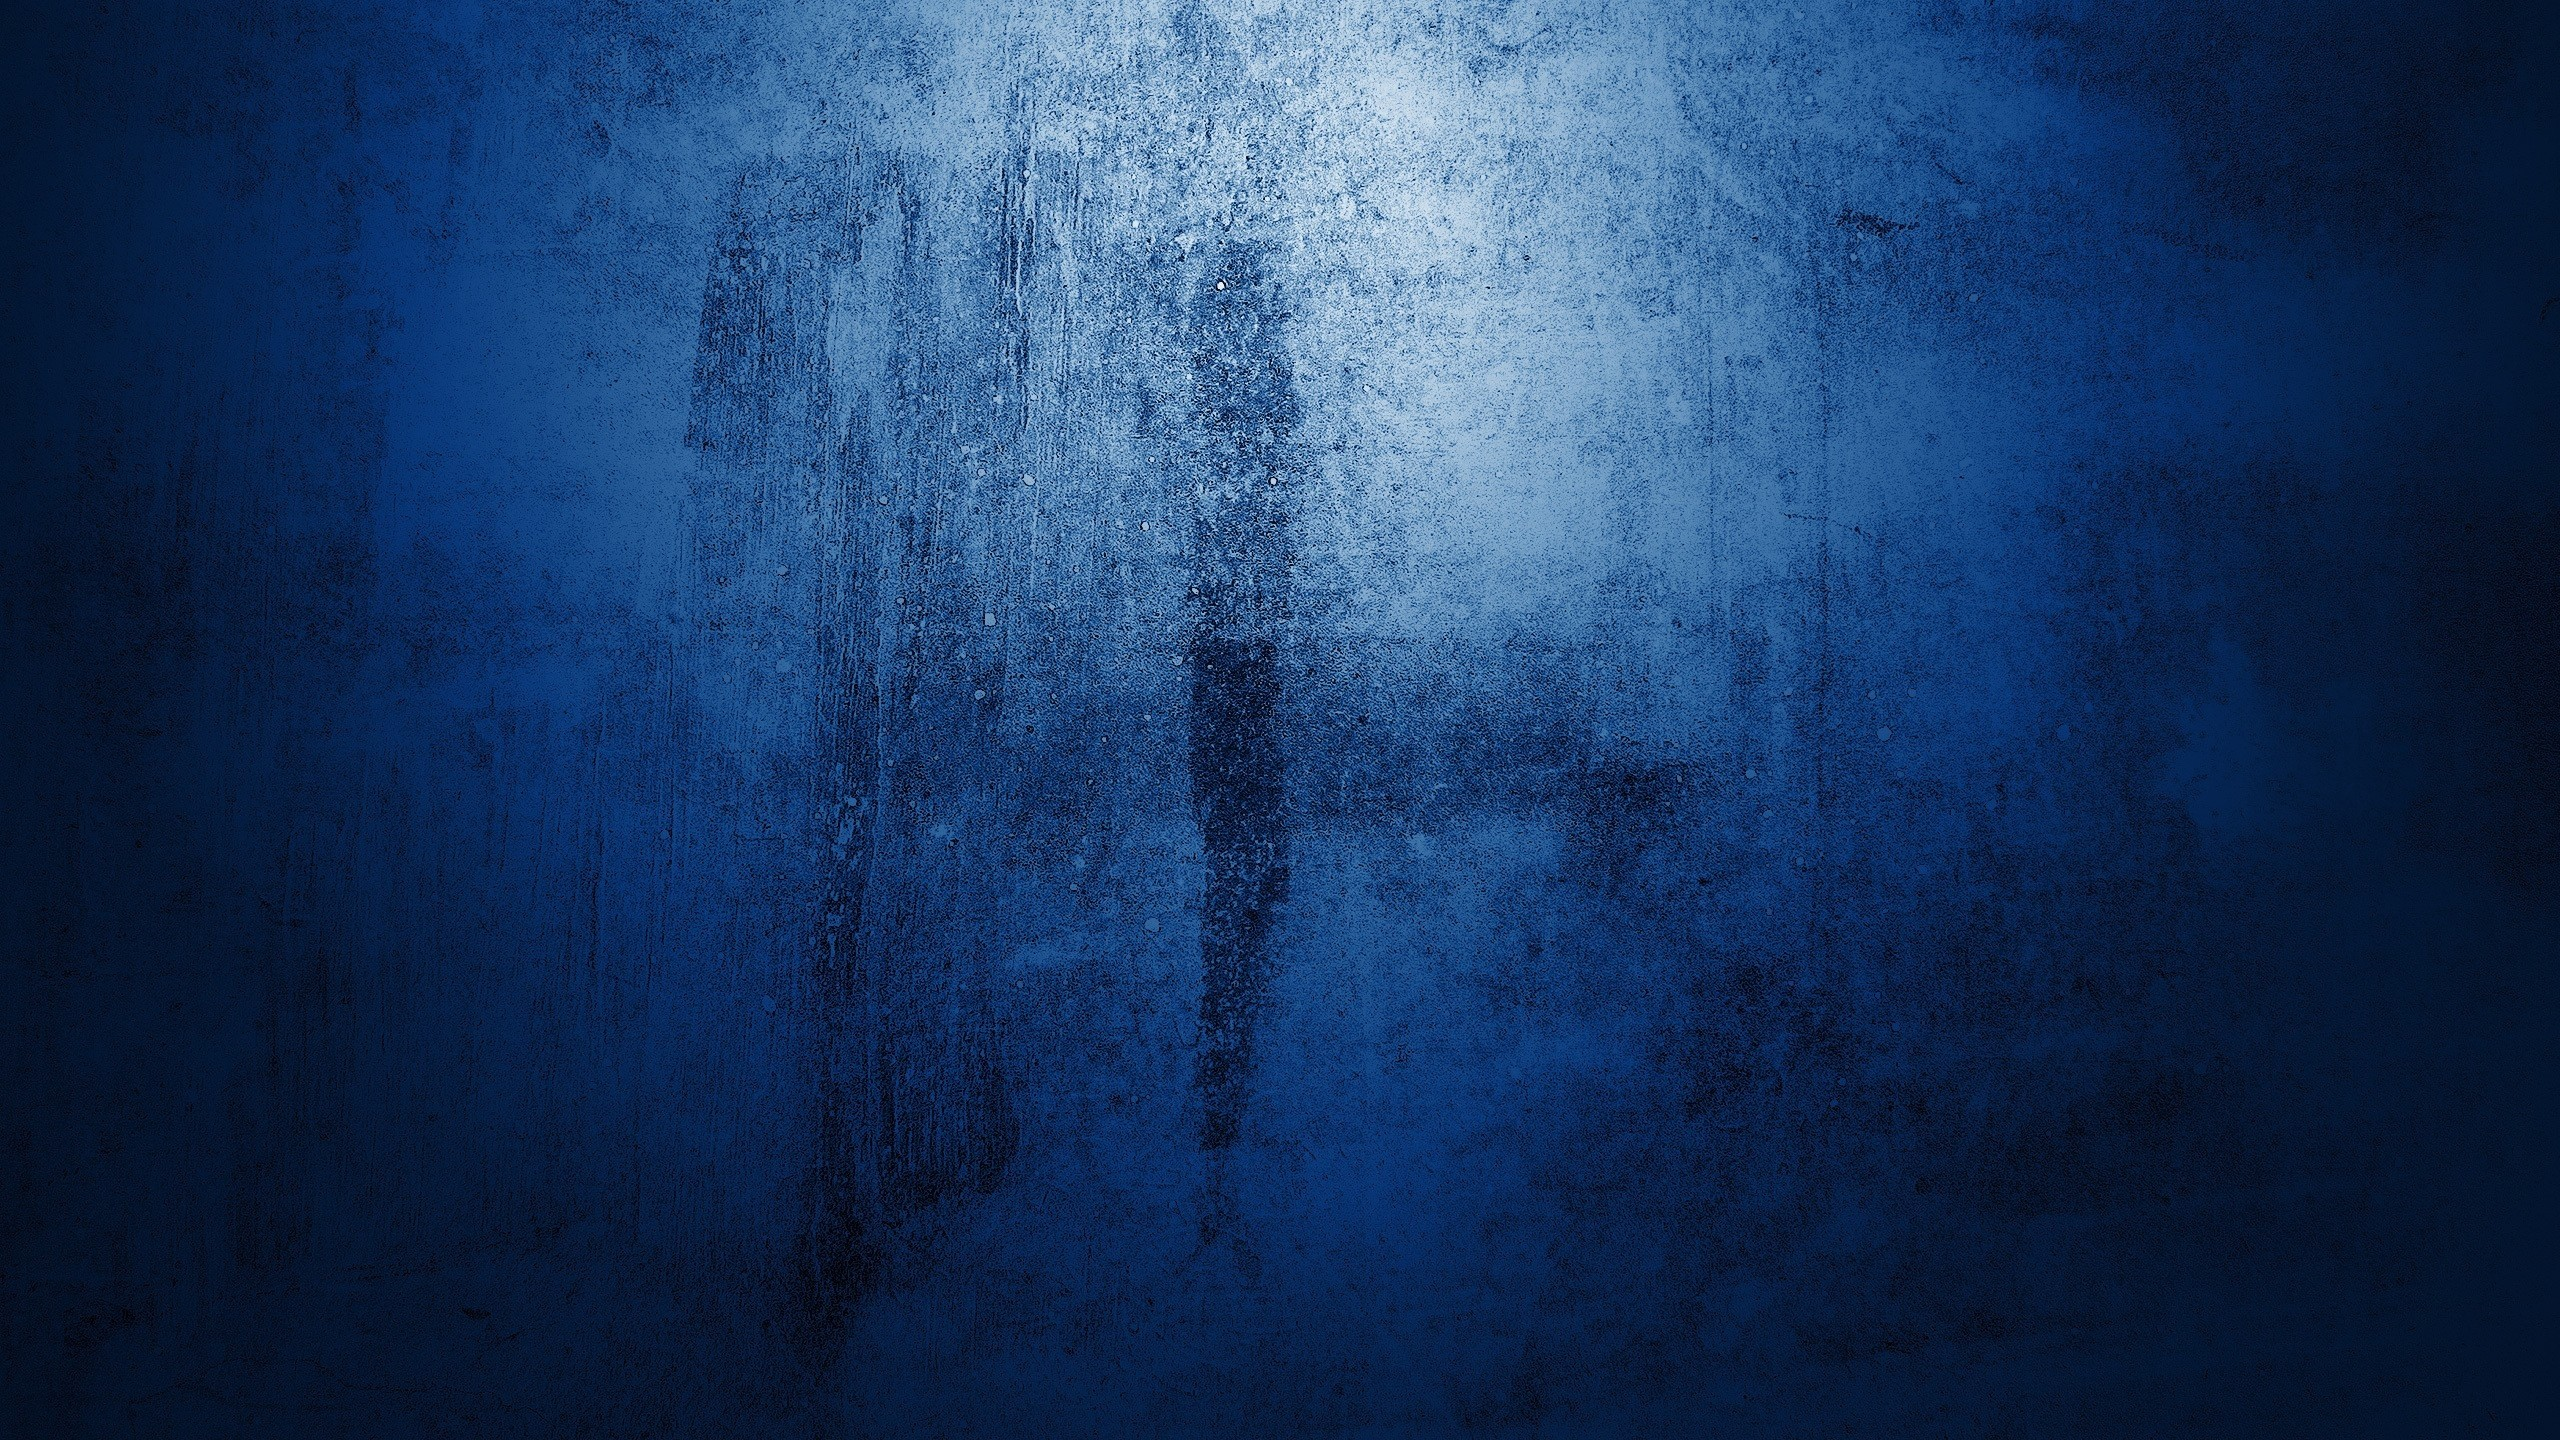 Dark Blue Background Images Wallpapertag: Blue Grunge Background ·① Download Free Beautiful